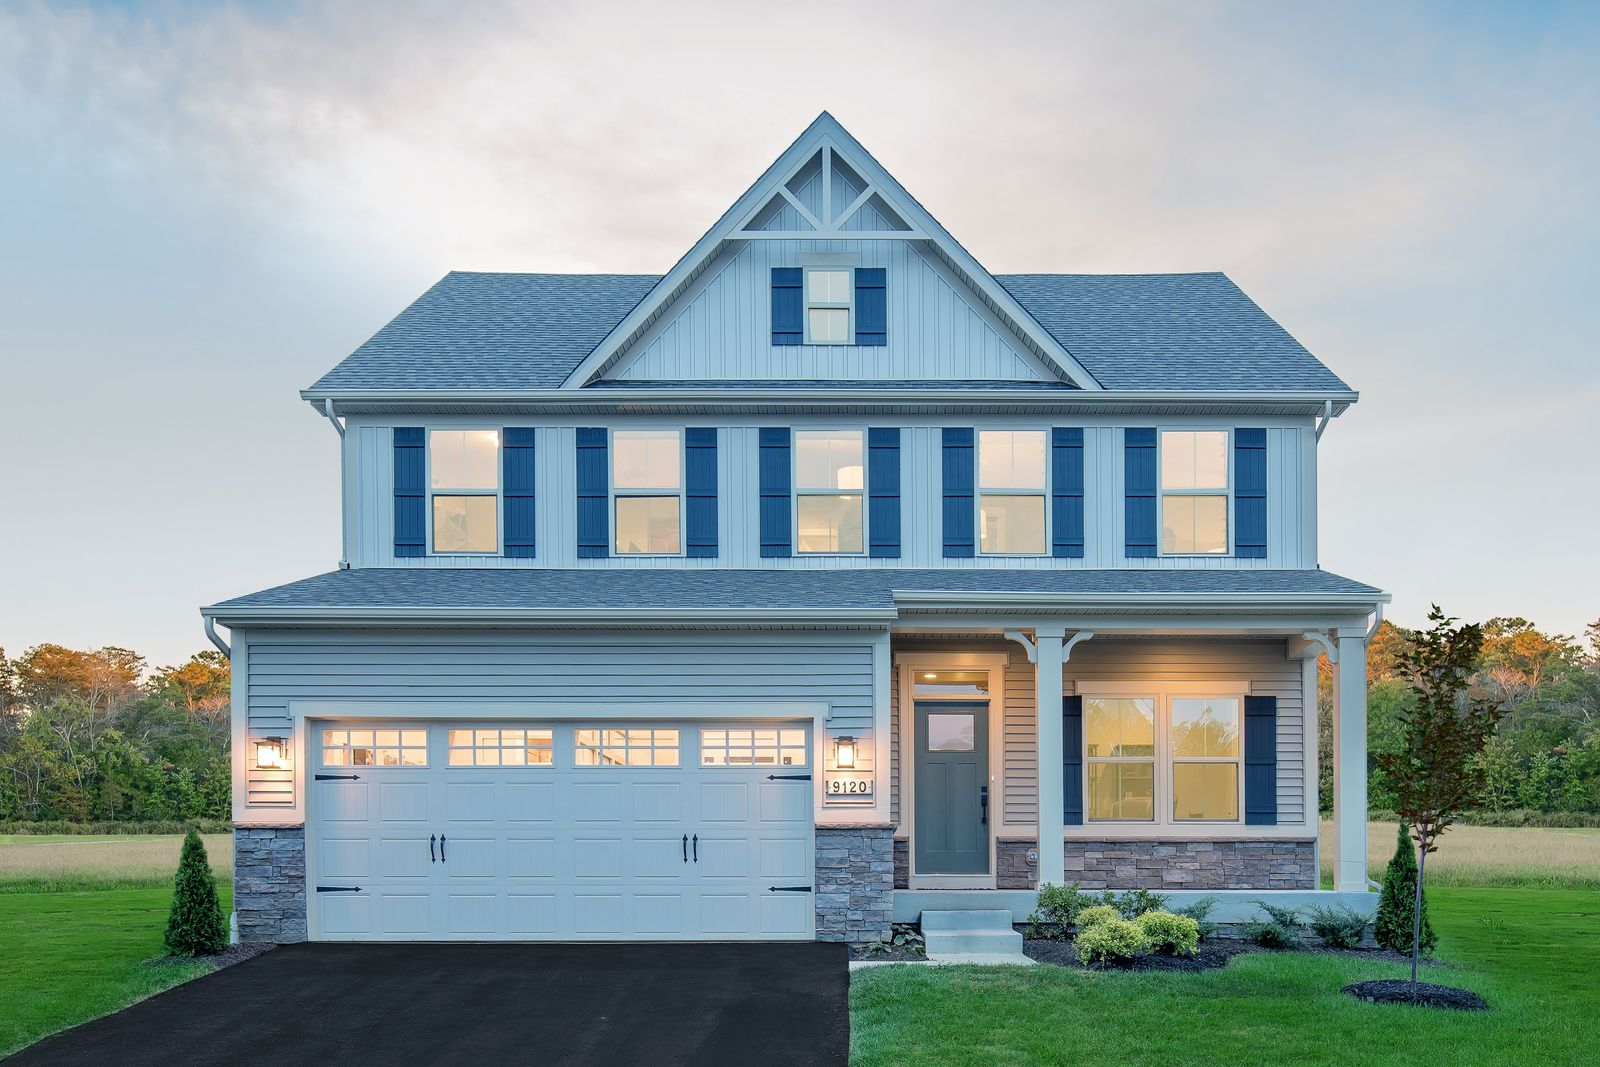 Welcome to The Preserve at Muir Woods:The only new home community in Williamsville schools with a grand entrance and private lake, convenient to UB and the 990.Click here to schedule your appointment today!